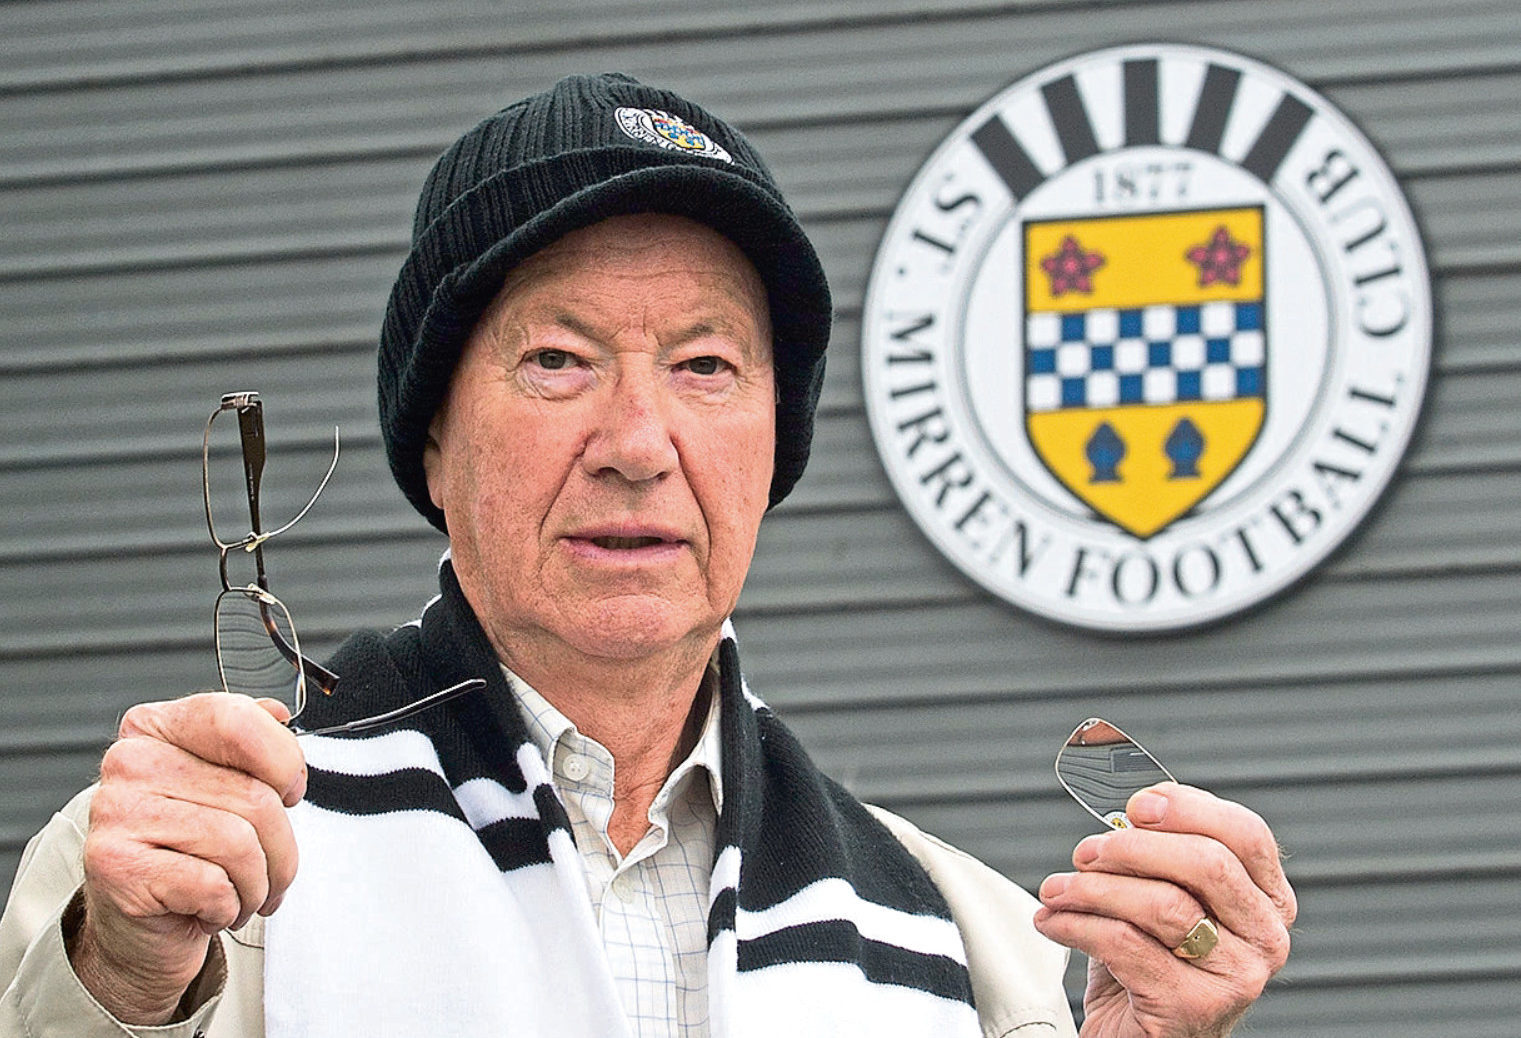 Life-long fan Ernie Lang says St Mirren's attitude to his injury and broken glasses is like a slap in the face (Mick McGurk)